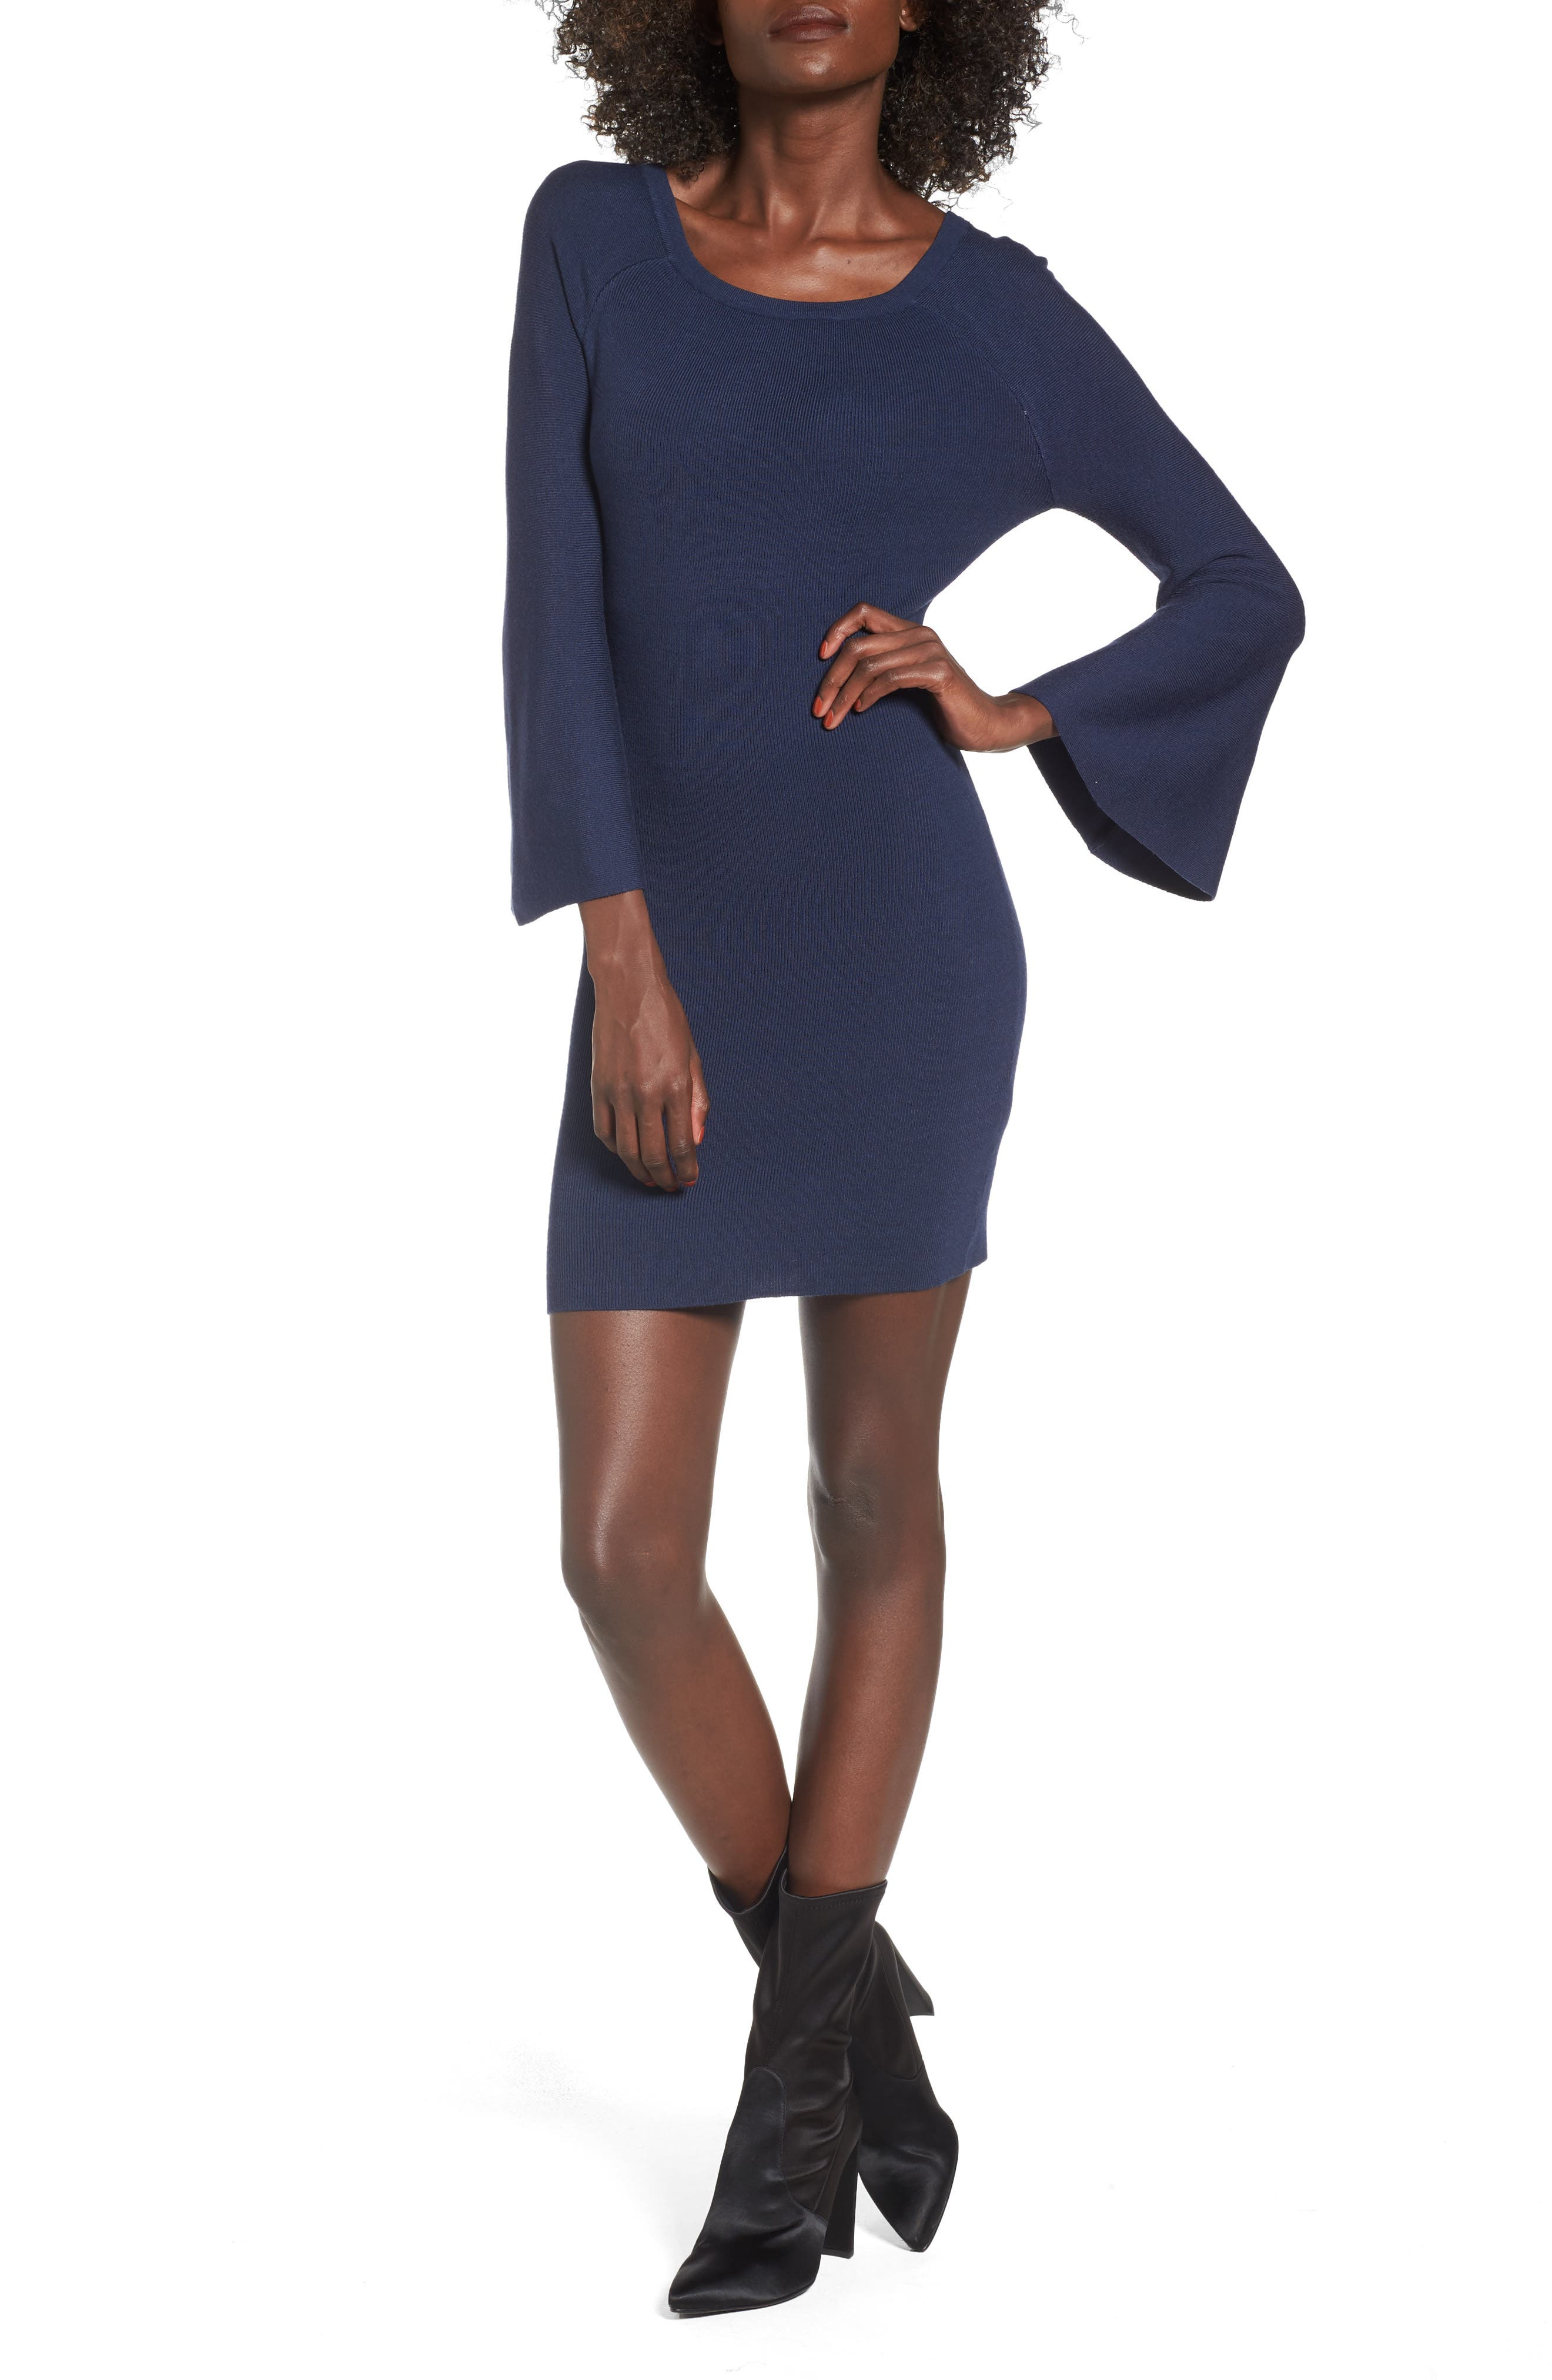 Alternate Image 1 Selected - J.O.A. Flare Sleeve Body-Con Dress